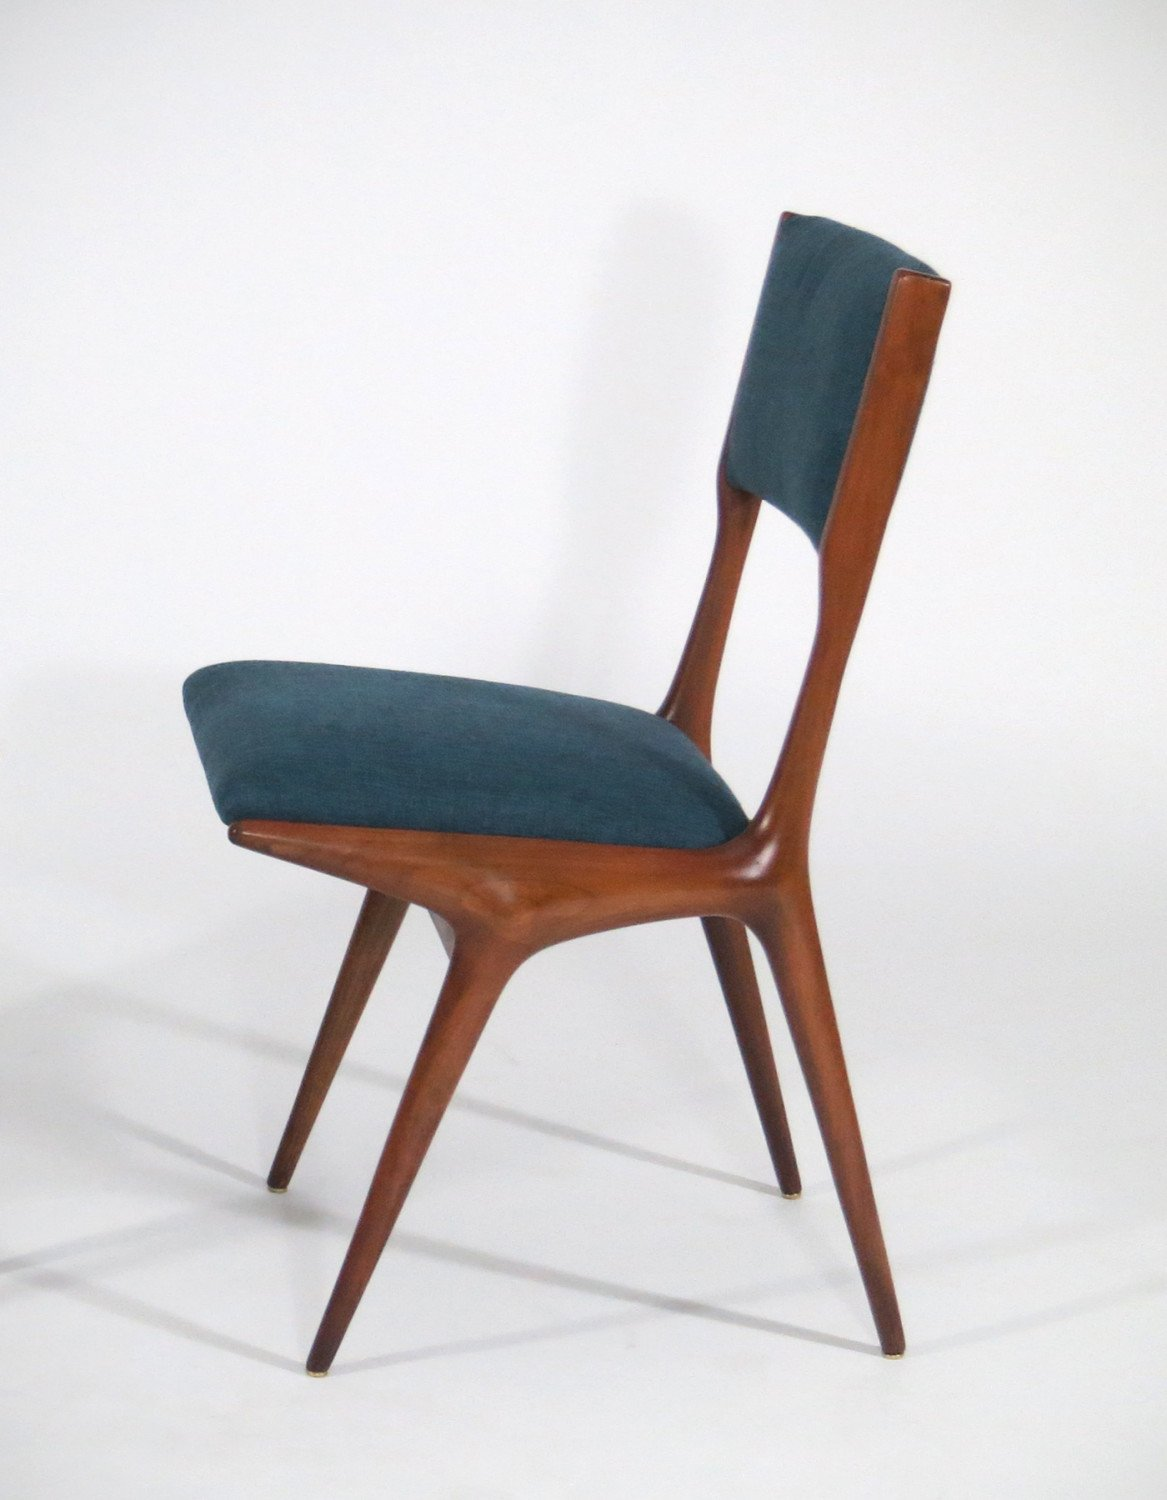 Carlo de Carli |  Dining chair, model 158 - set of six